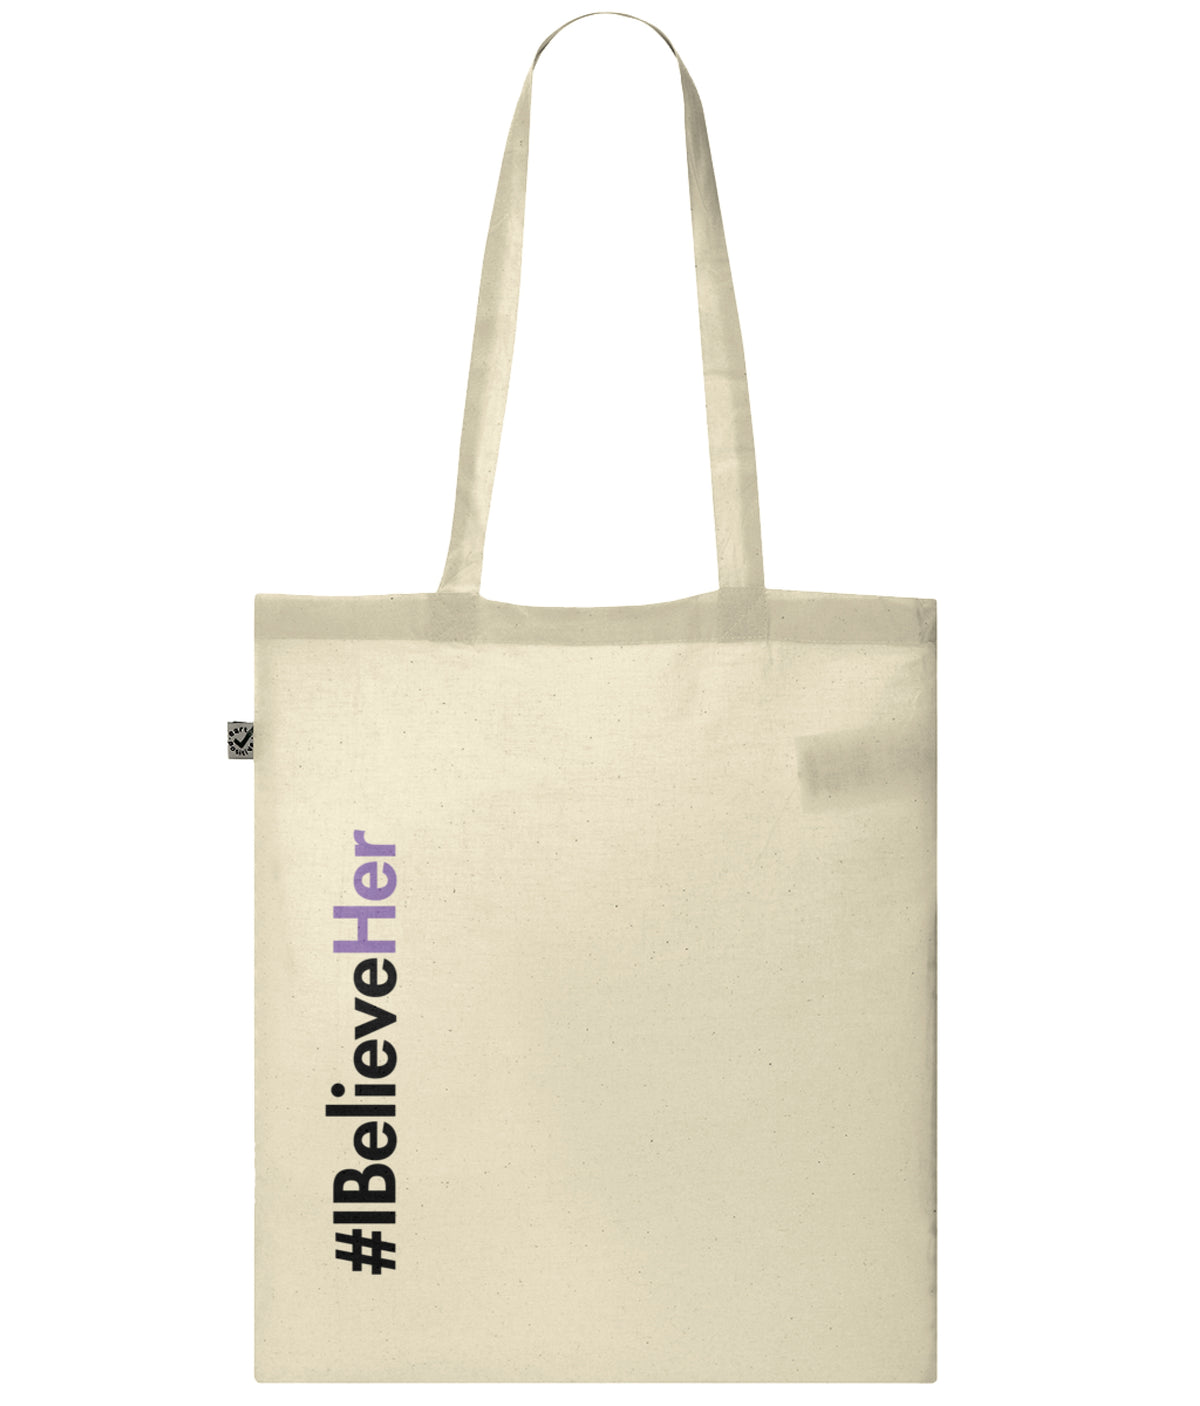 #IBelieveHer Organic Combed Cotton Tote Bag Natural